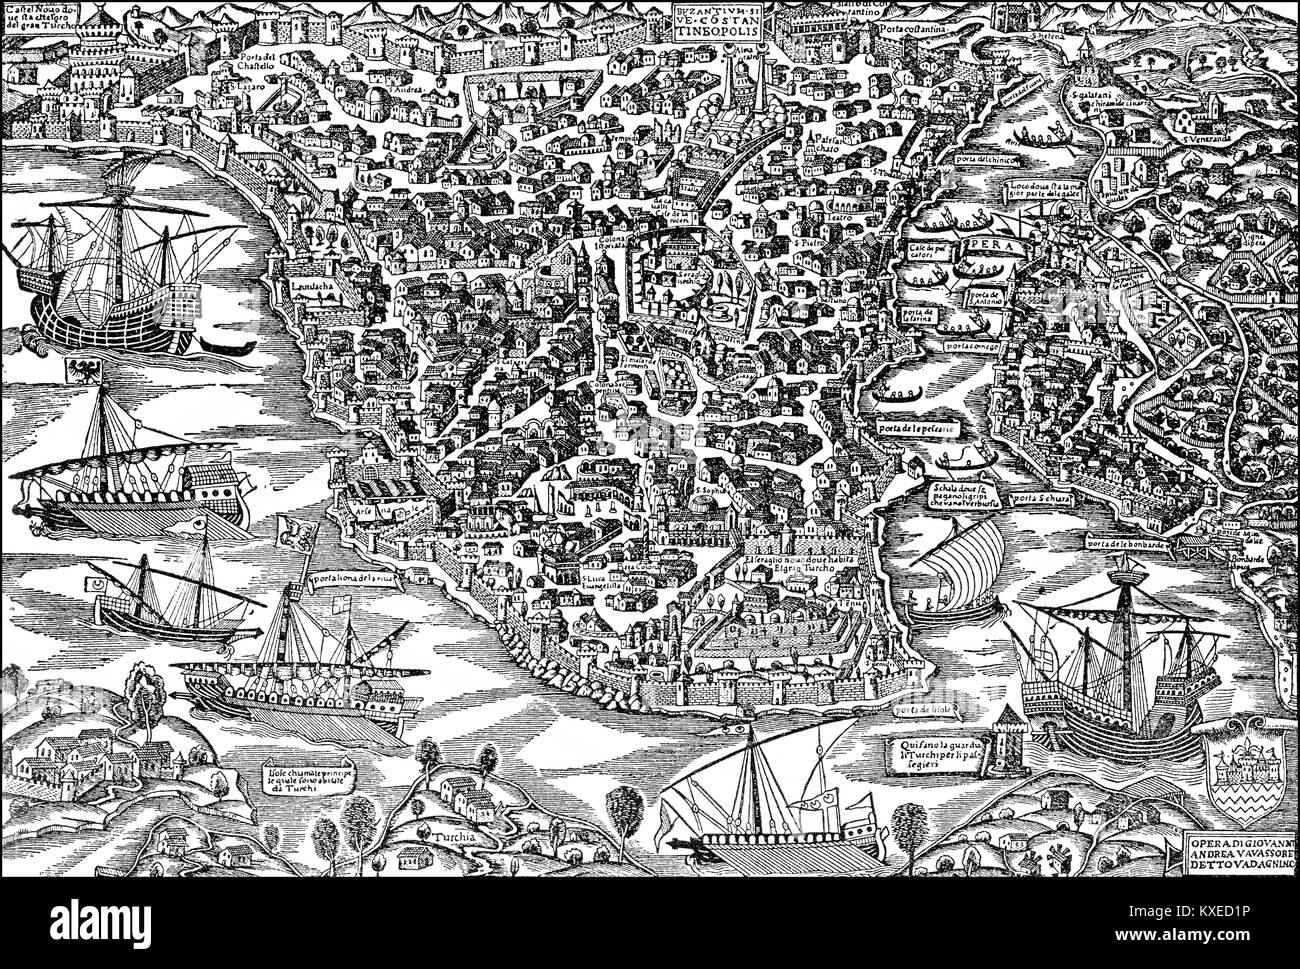 Cityscape of Constantinople, 1520 - Stock Image